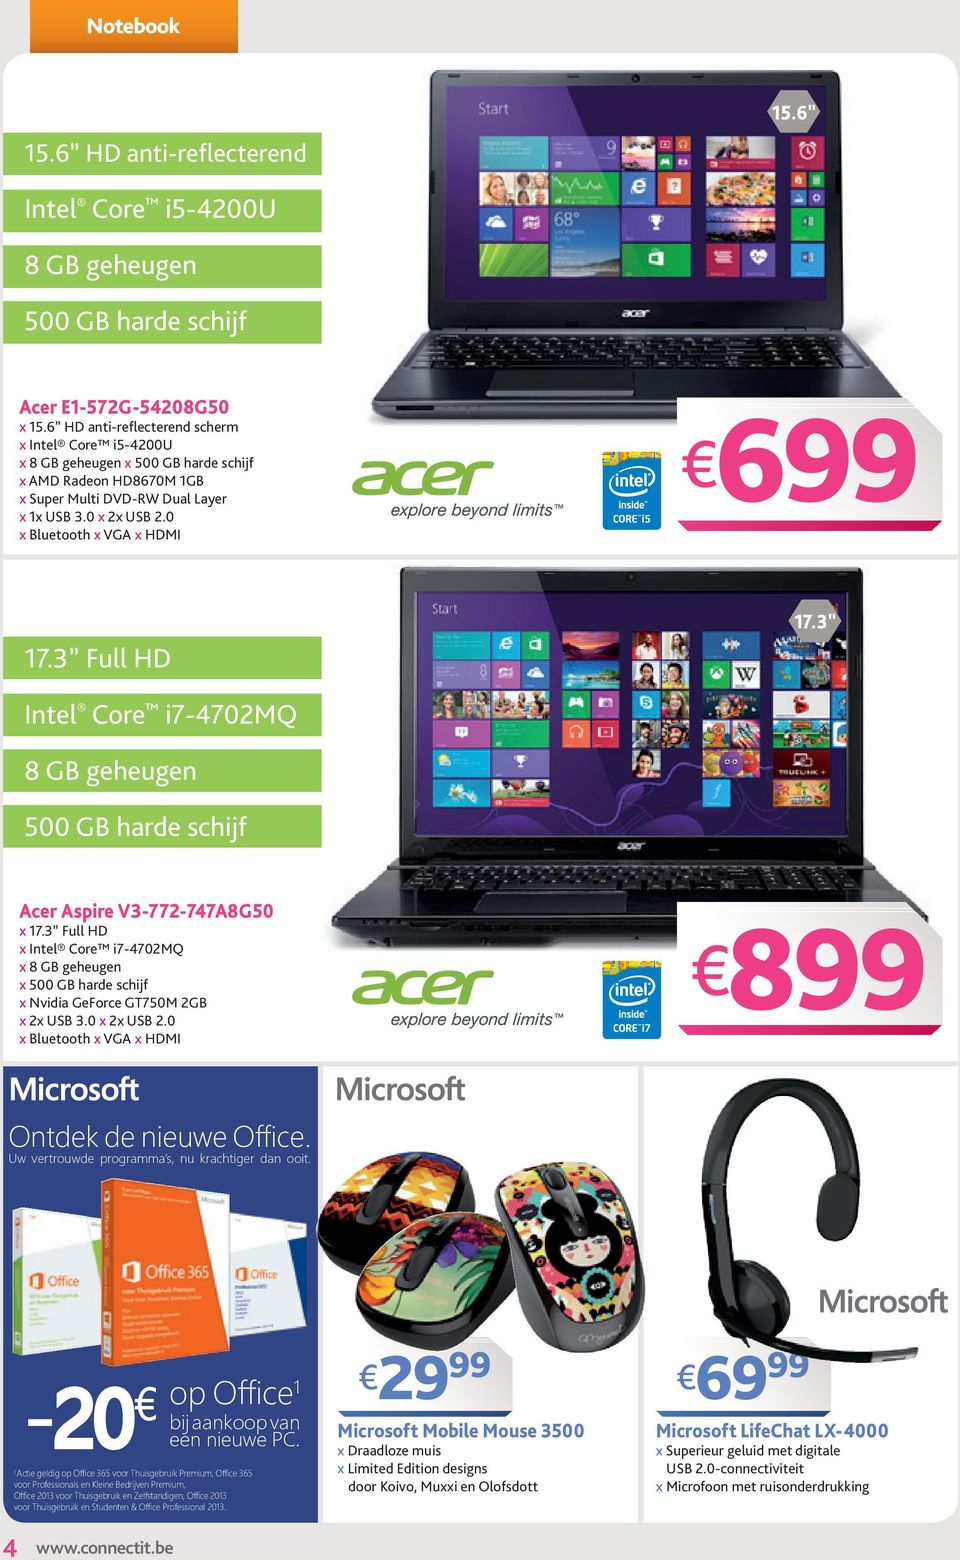 0 x Bluetooth x VGA x HDMI 6 17.3 Full HD Intel Core i7-4702mq 8 GB geheugen 500 GB harde schijf Acer Aspire v3-772-747a8g50 x 17.